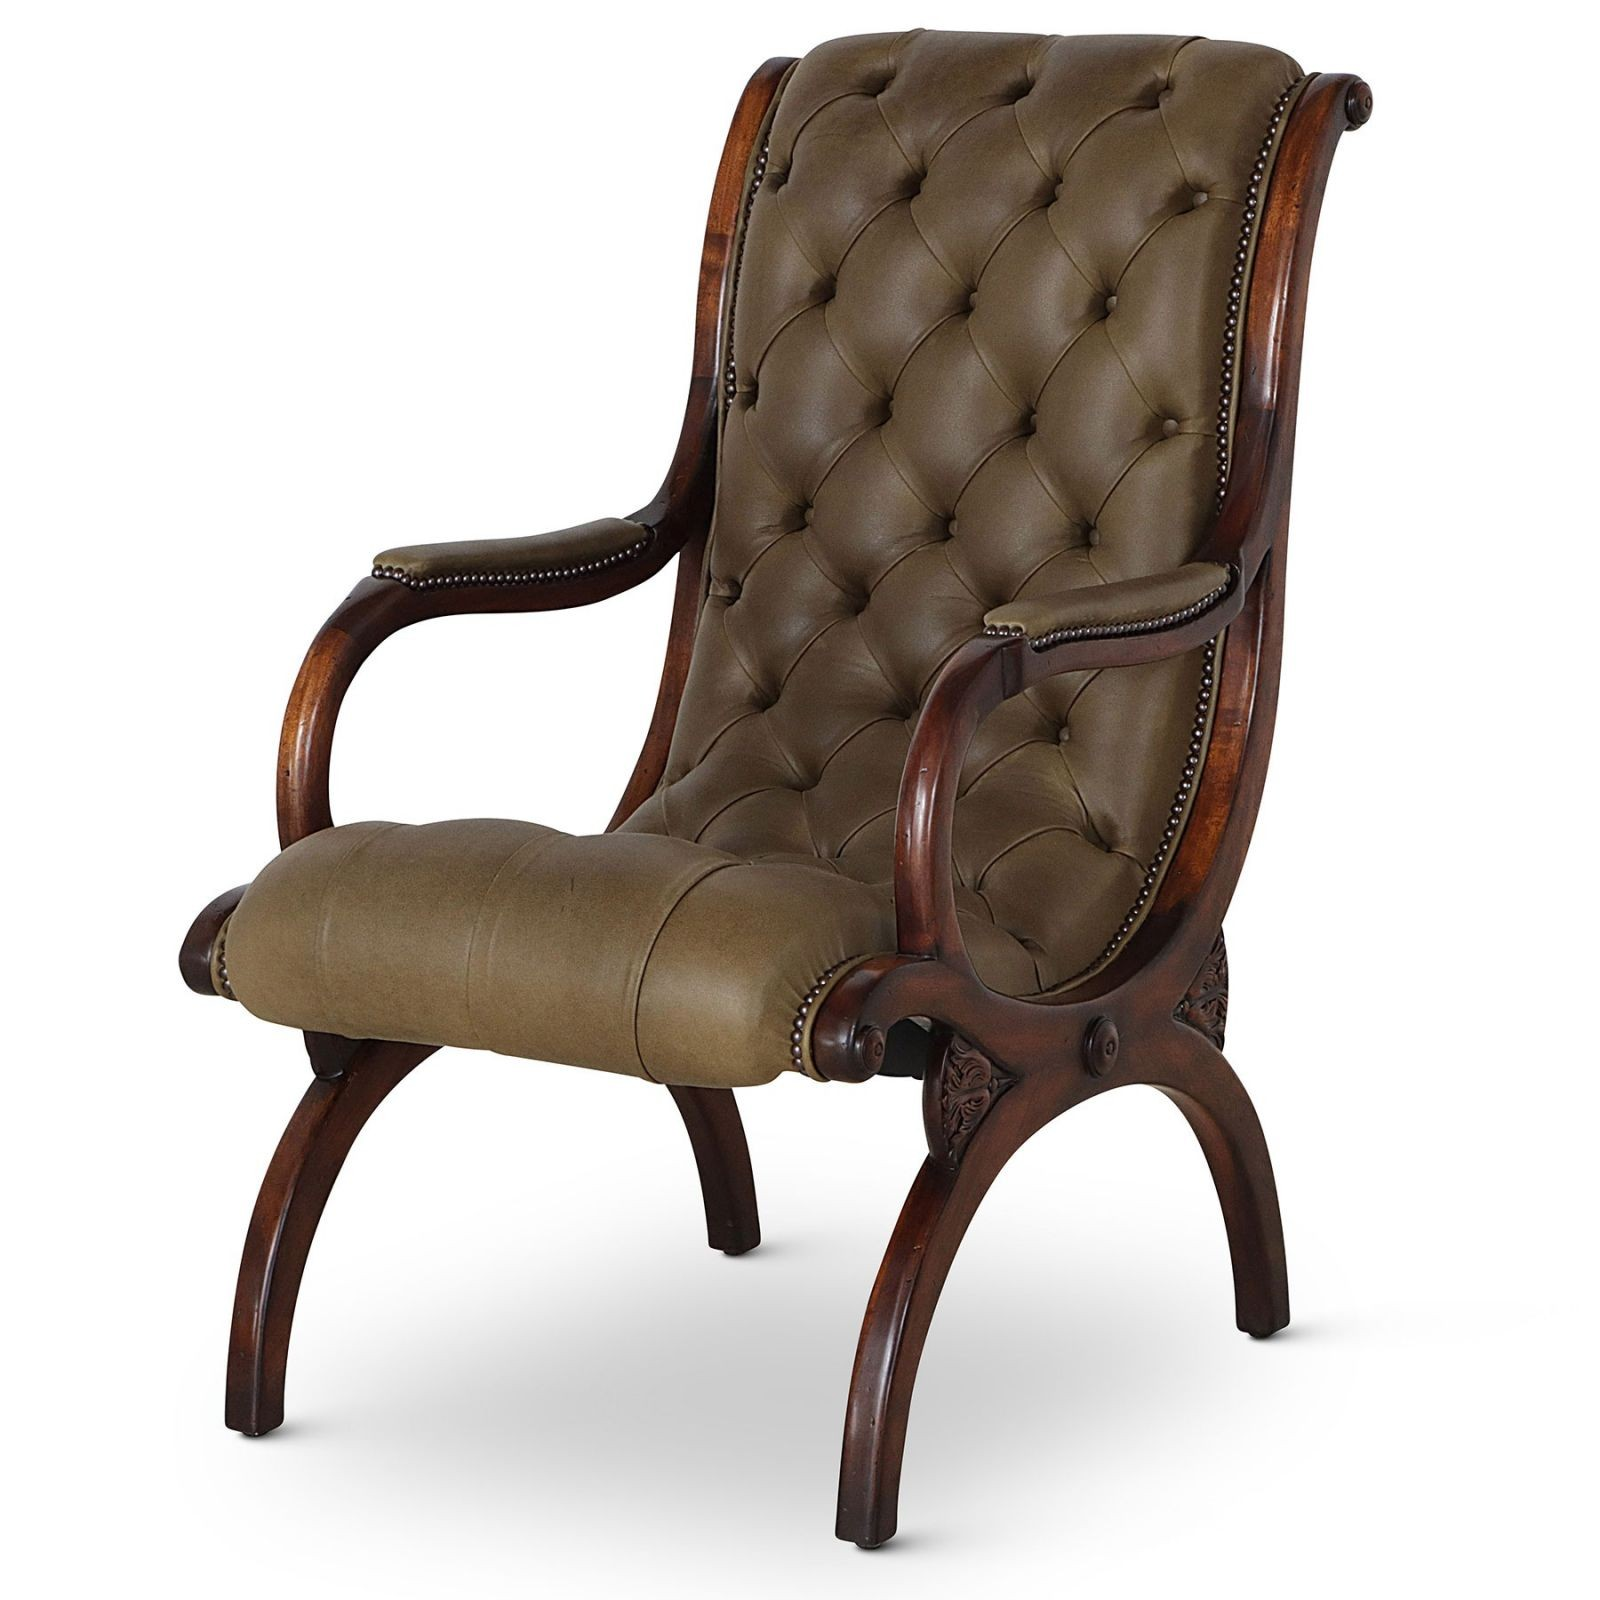 Classic slipper arm chair in olive green leather